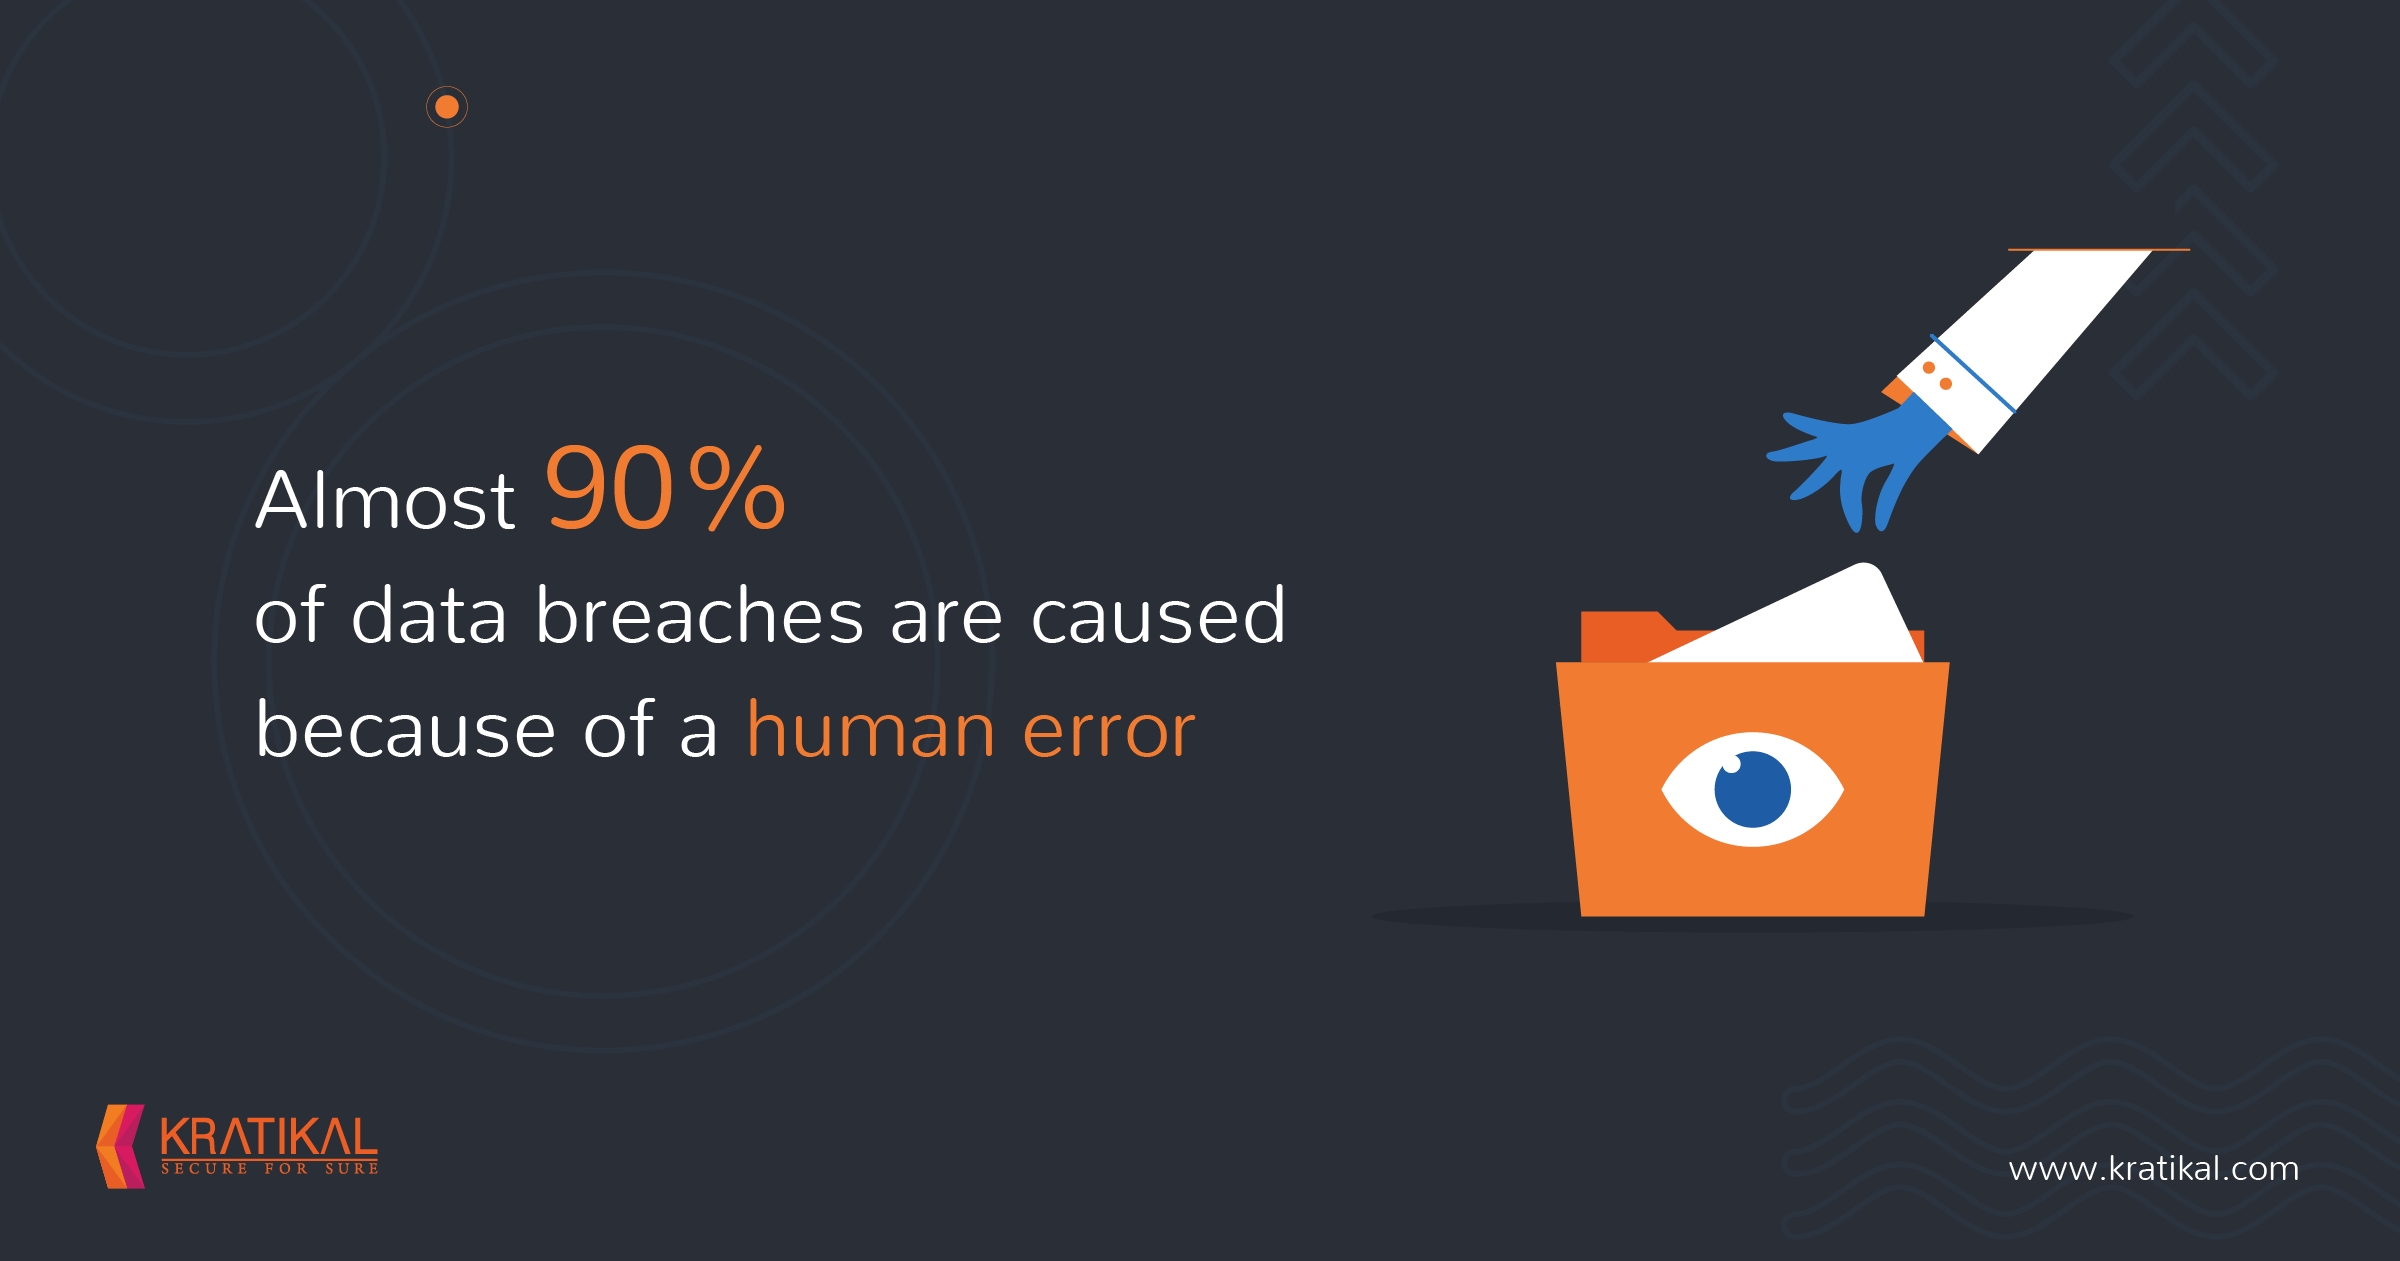 Almost 90% of data breaches are caused because of a human error